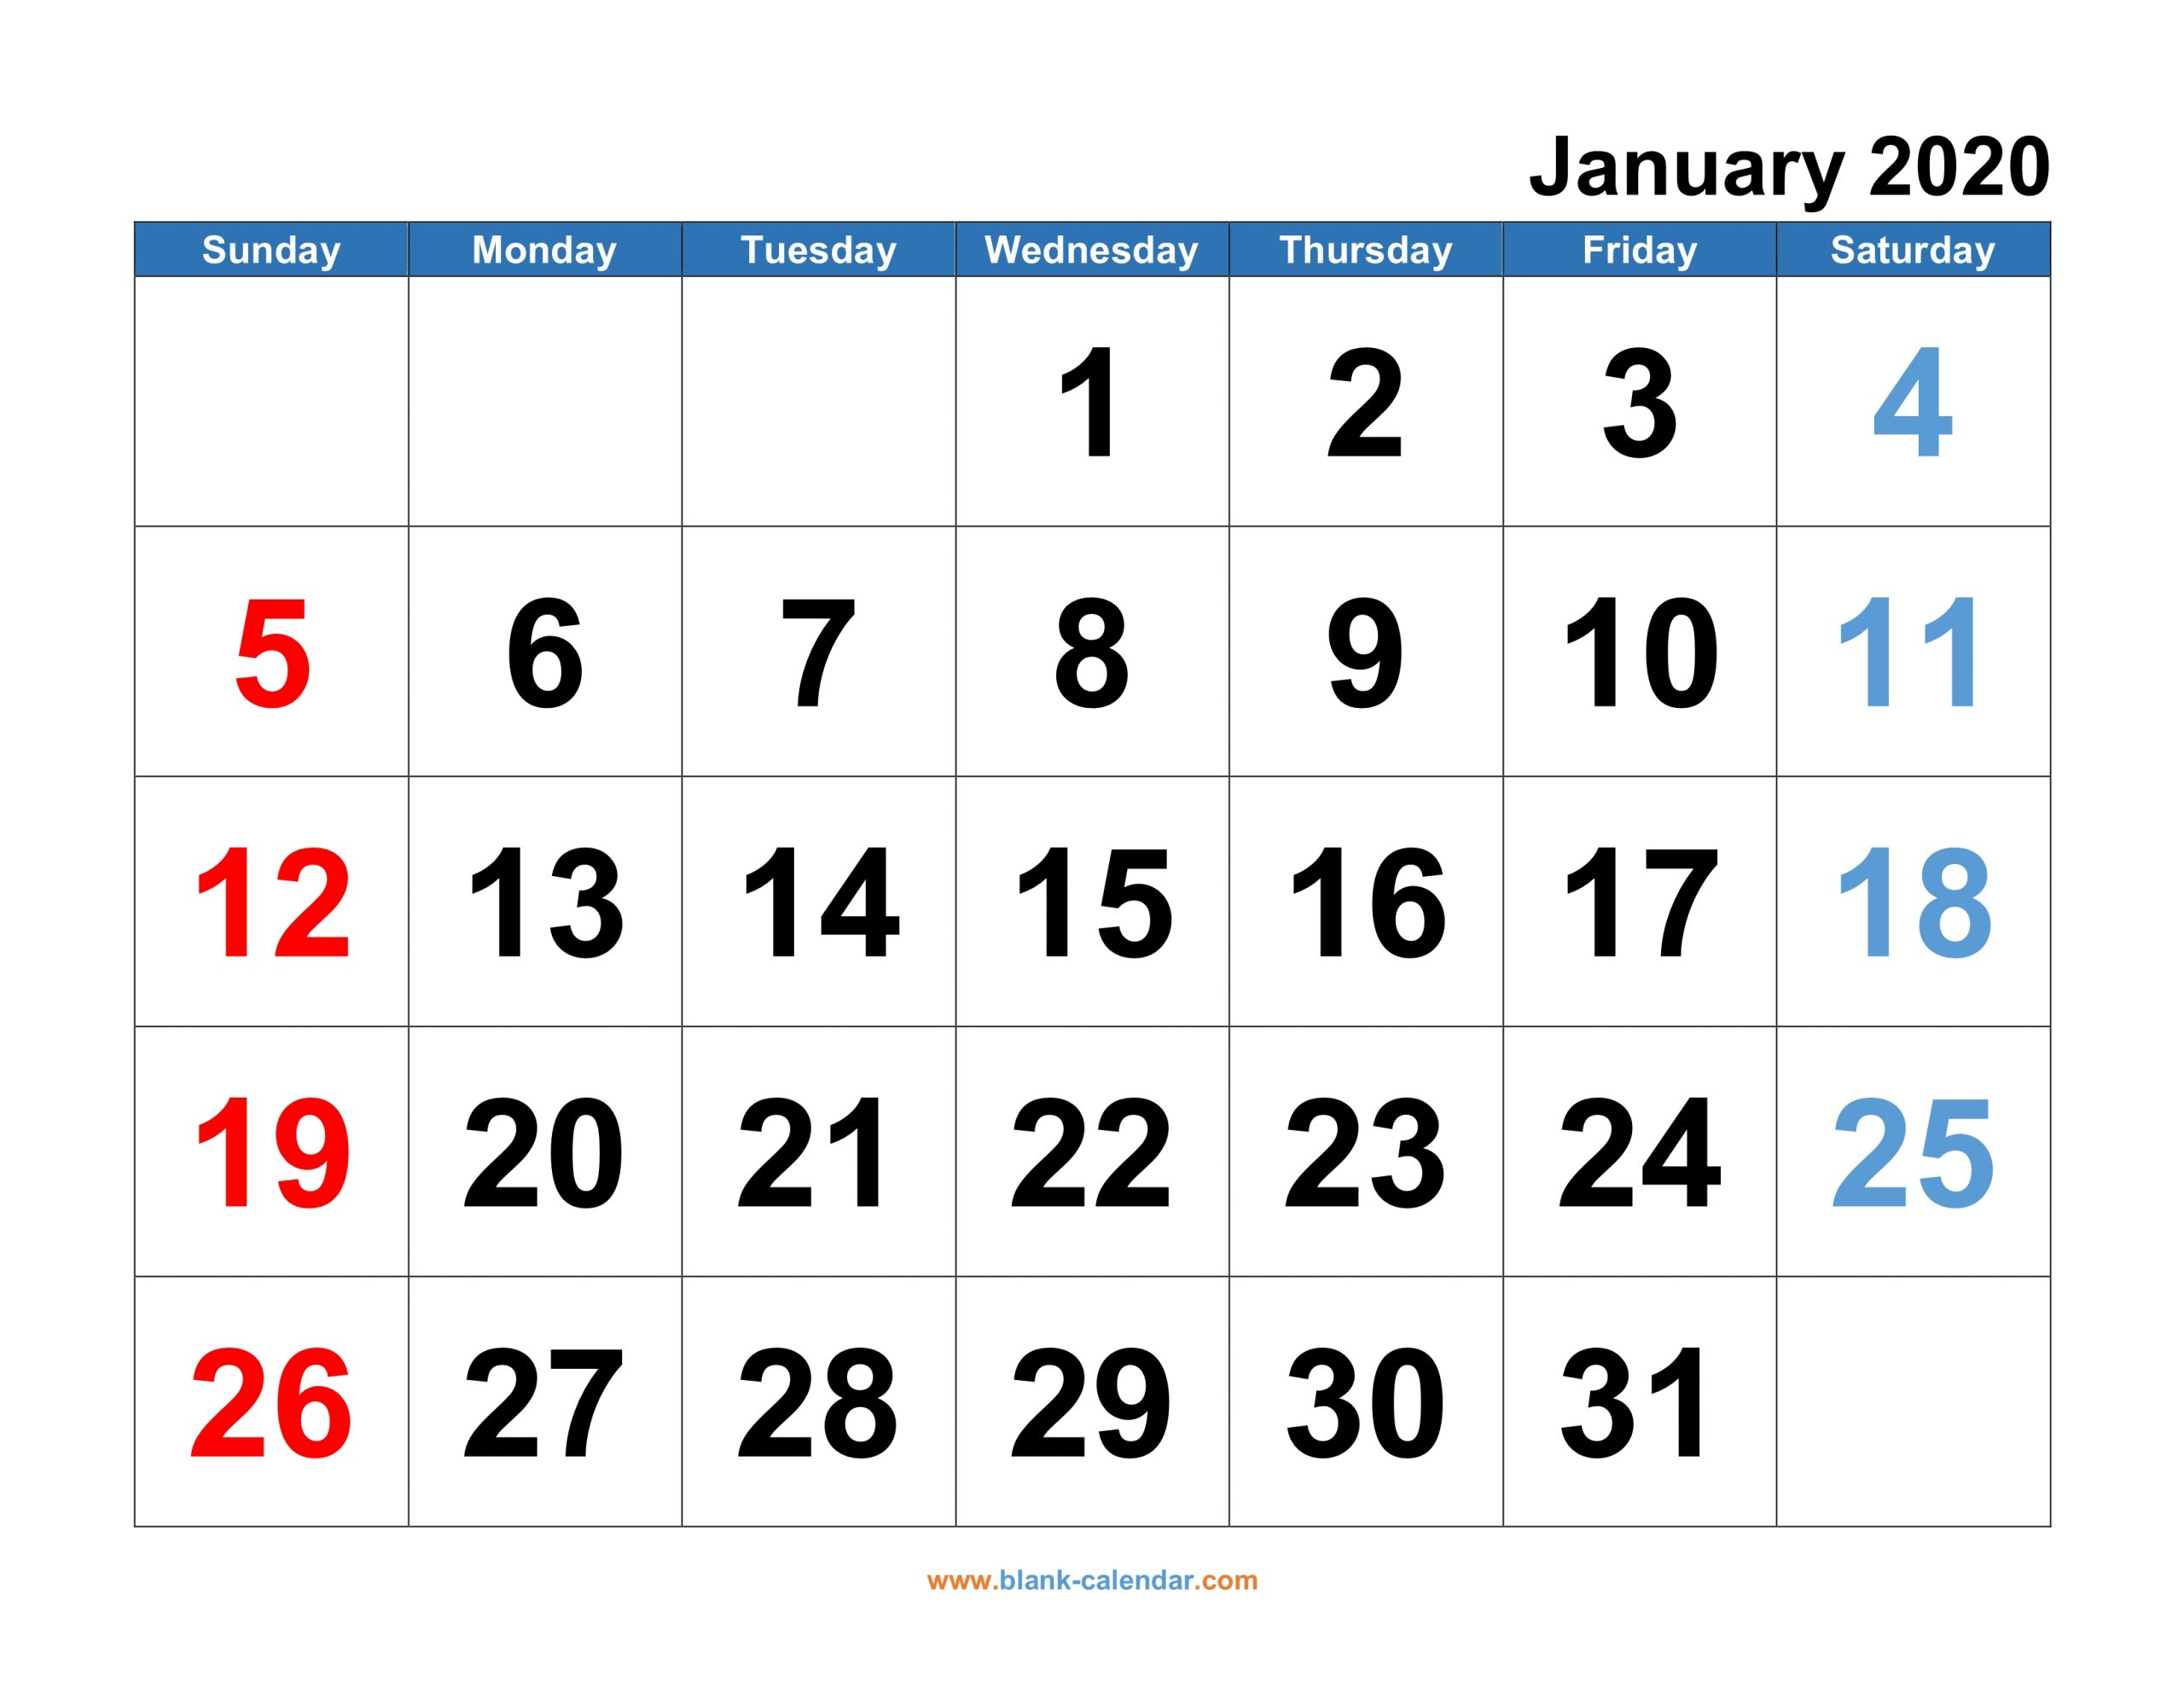 Monthly Calendar 2020 | Free Download, Editable And Printable